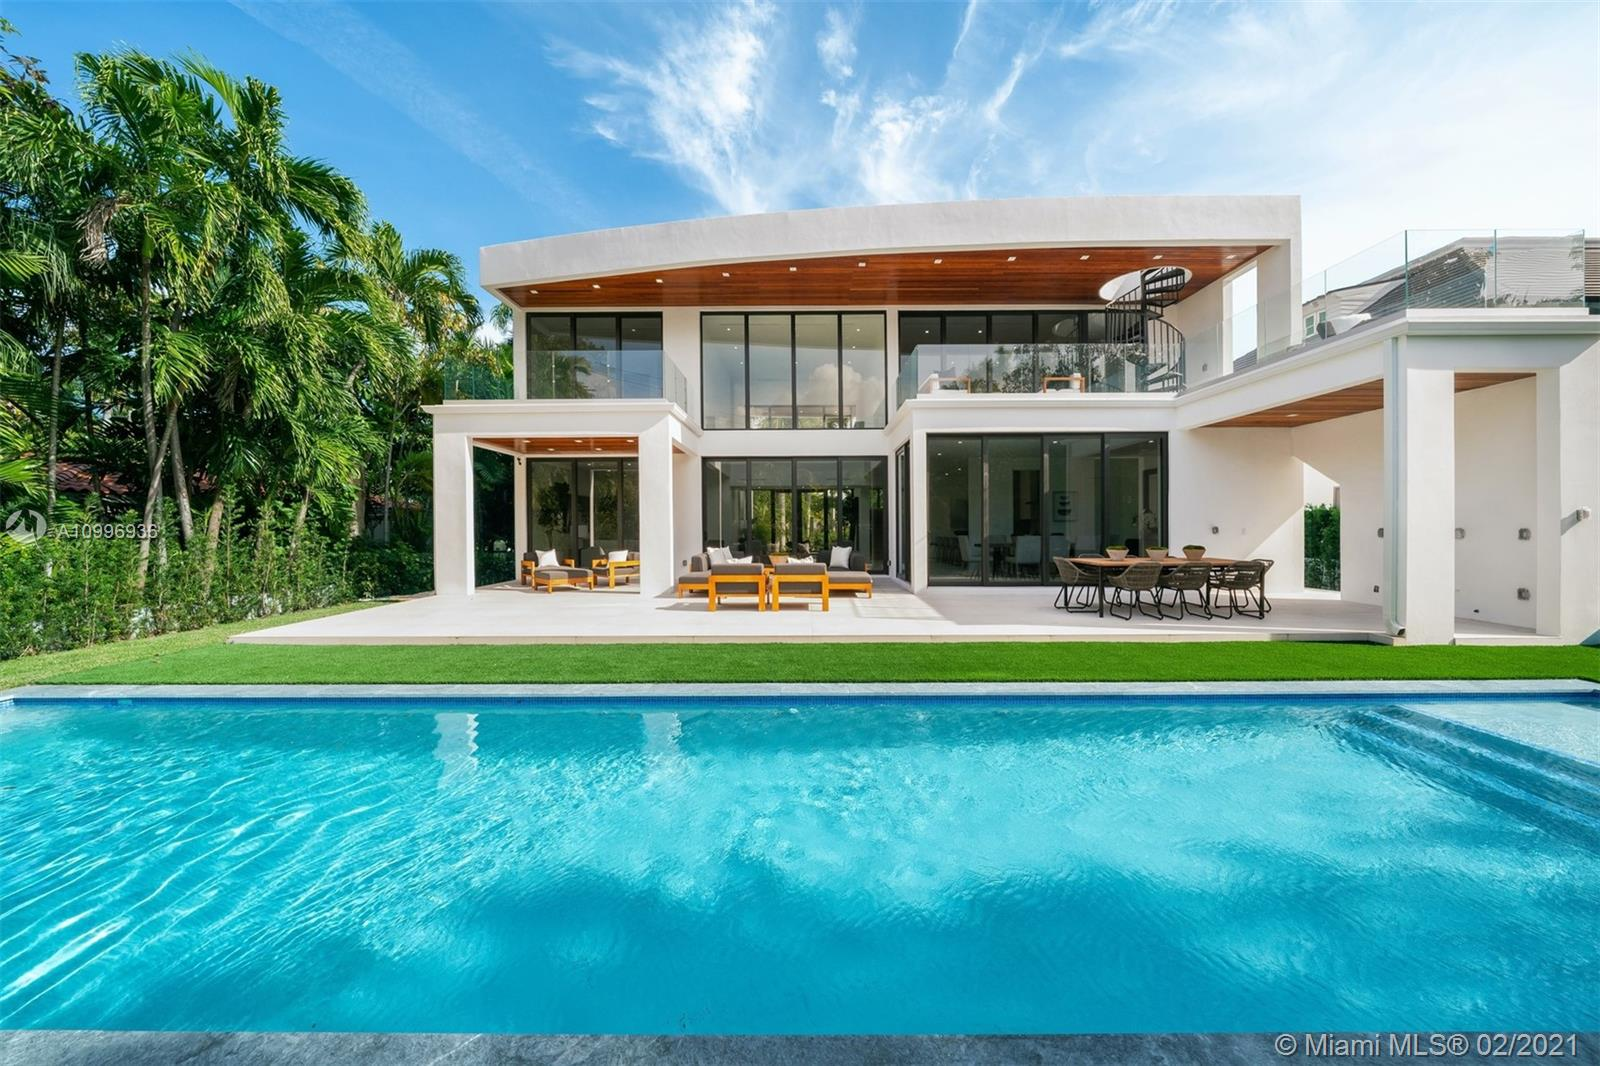 112 W Palm Midway Luxury Real Estate